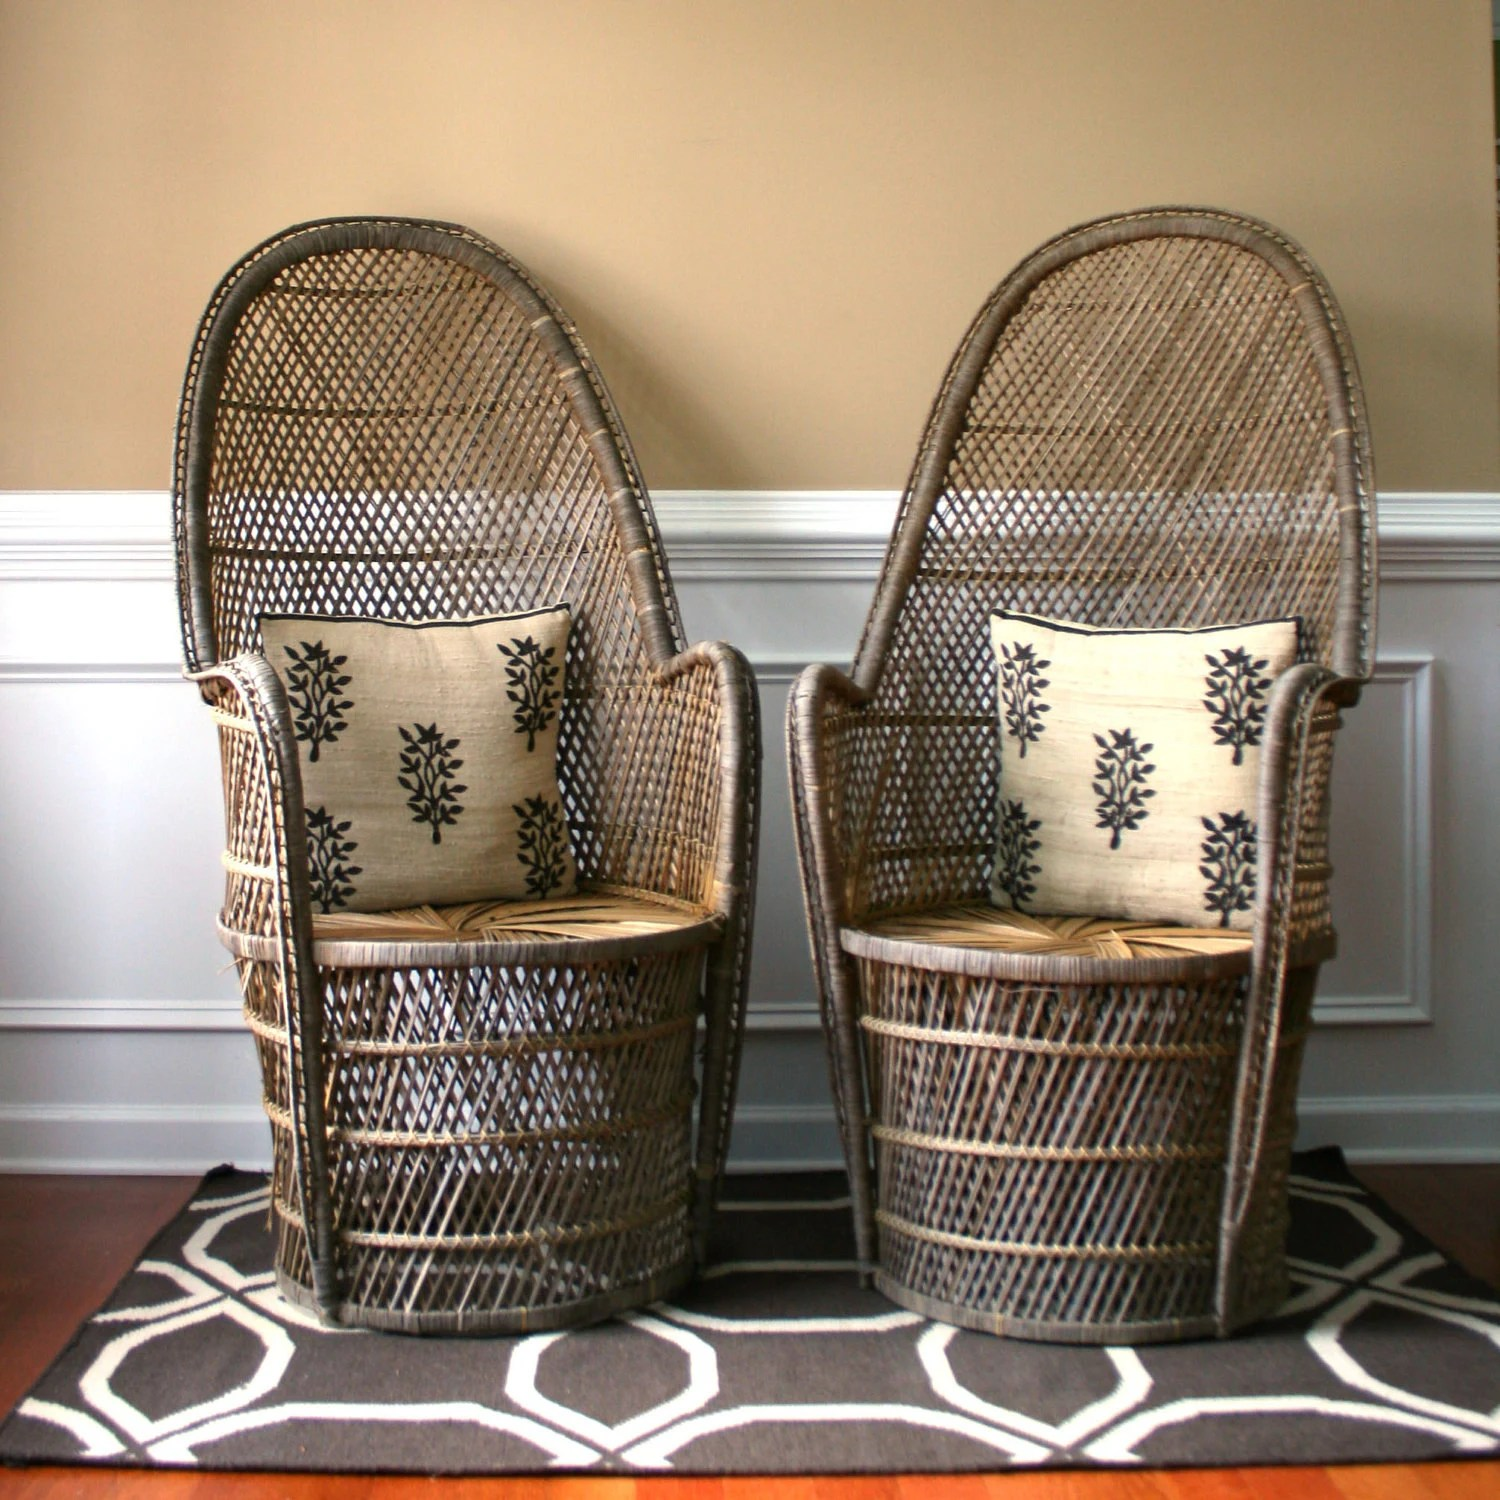 high backed throne chair cedar adirondack chairs sale pair fan back chairs. armchair. rattan.